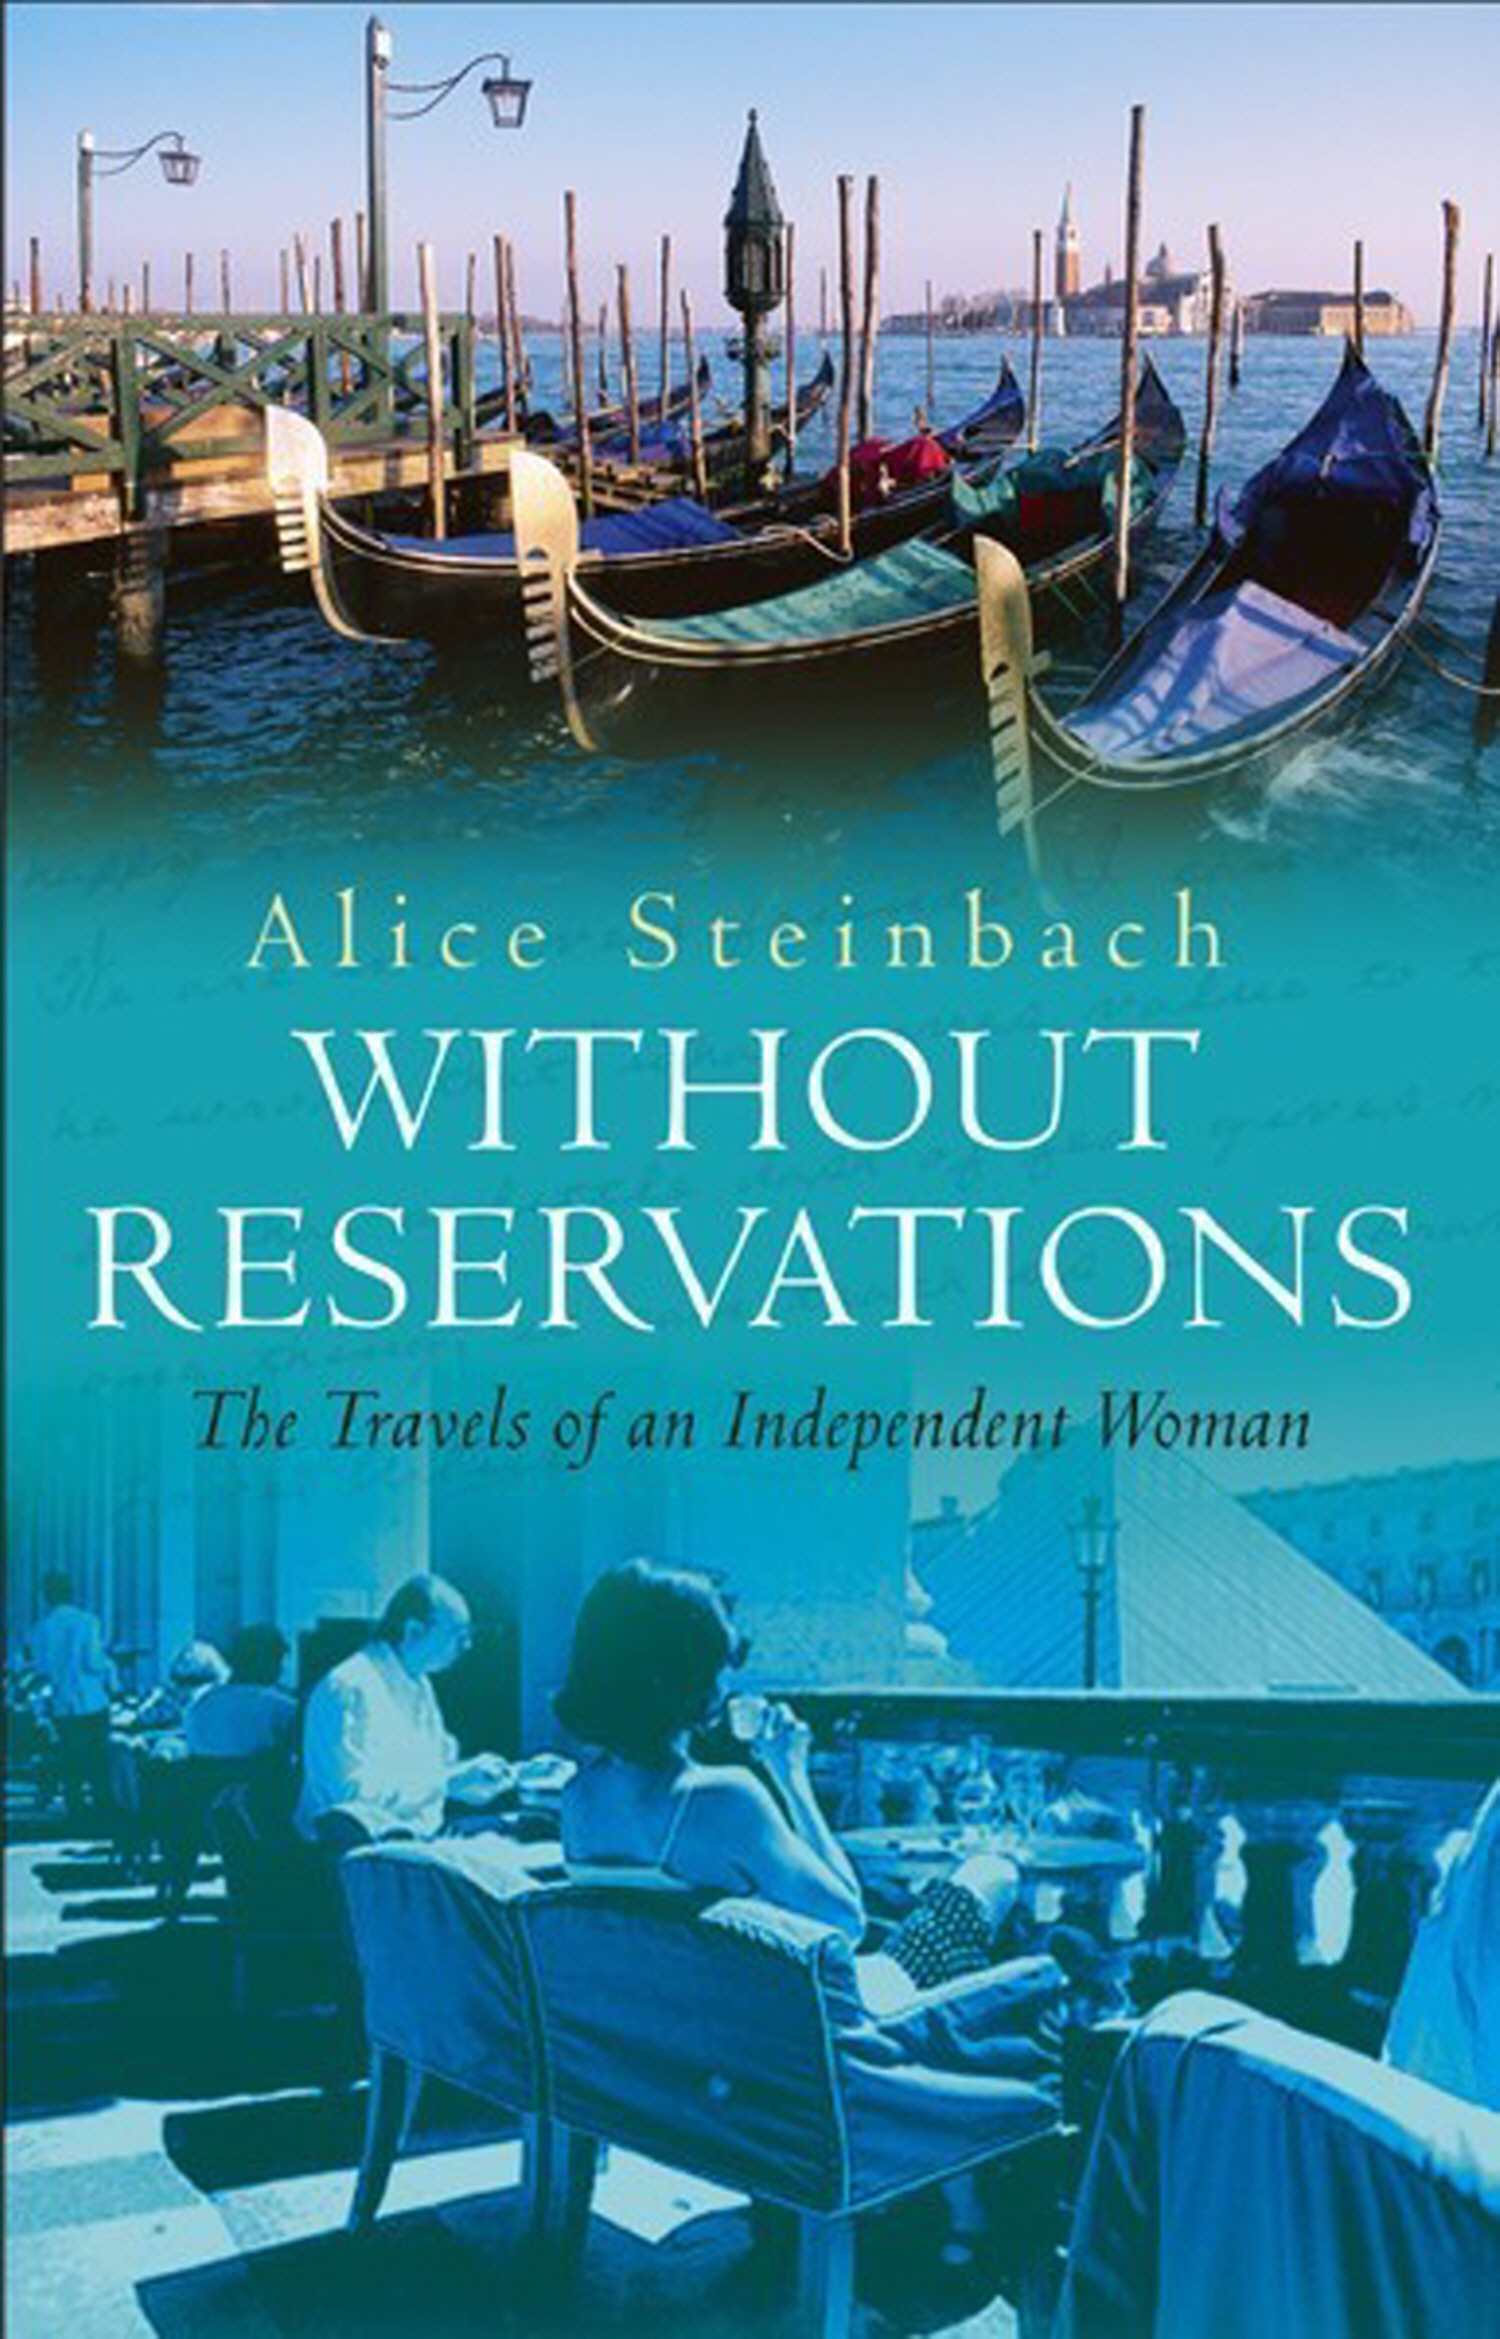 Without Reservations Movie HD free download 720p